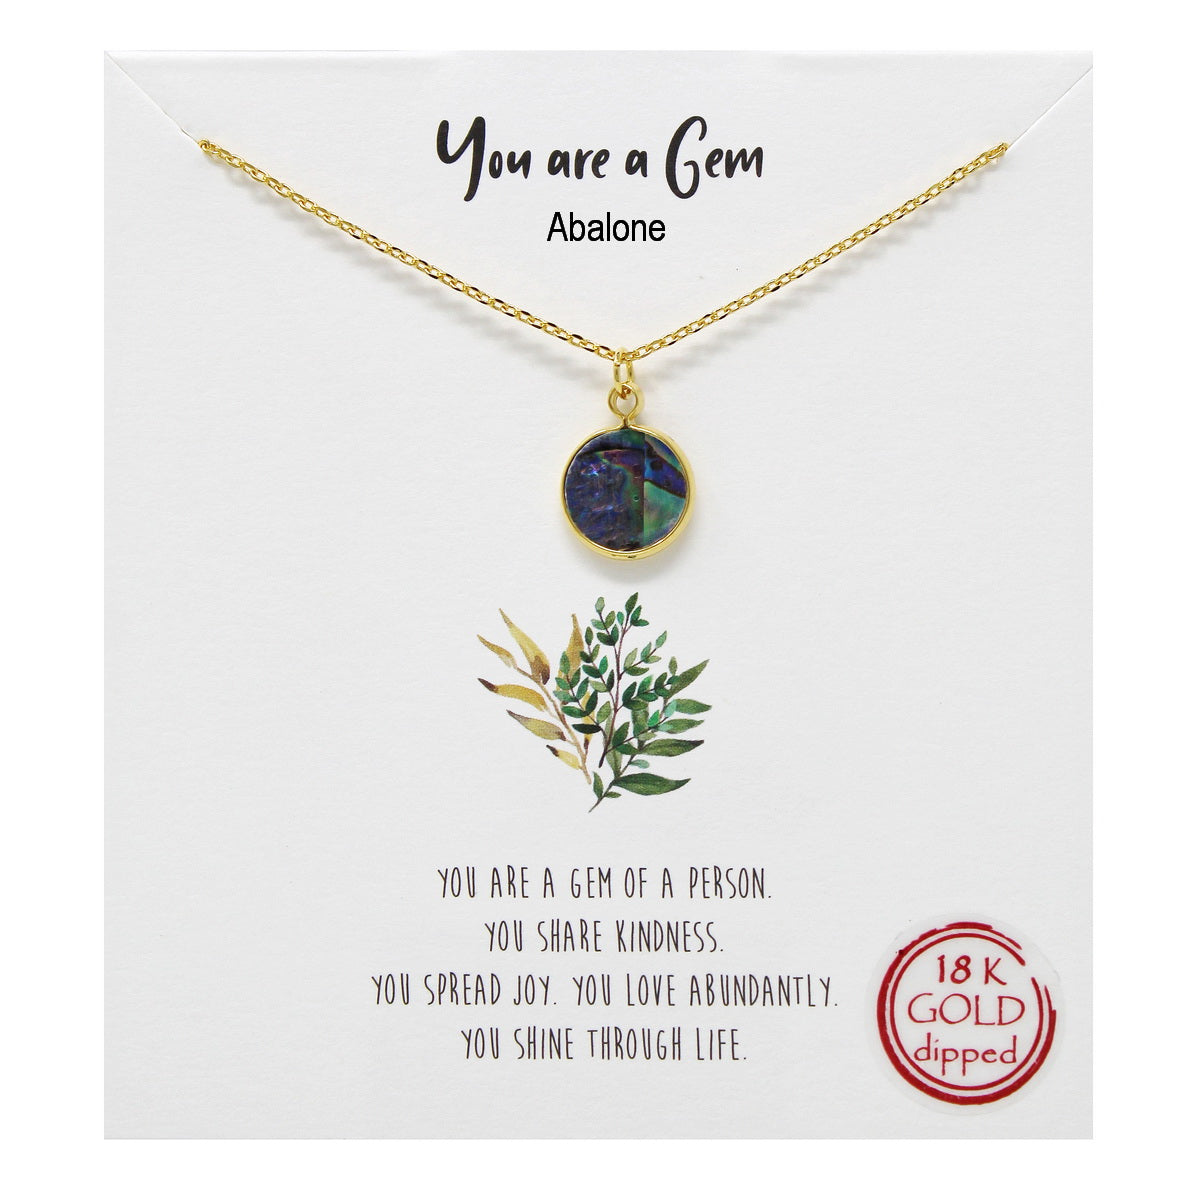 Tell Your Story: You Are a Gem Pendant Simple Chain Necklace